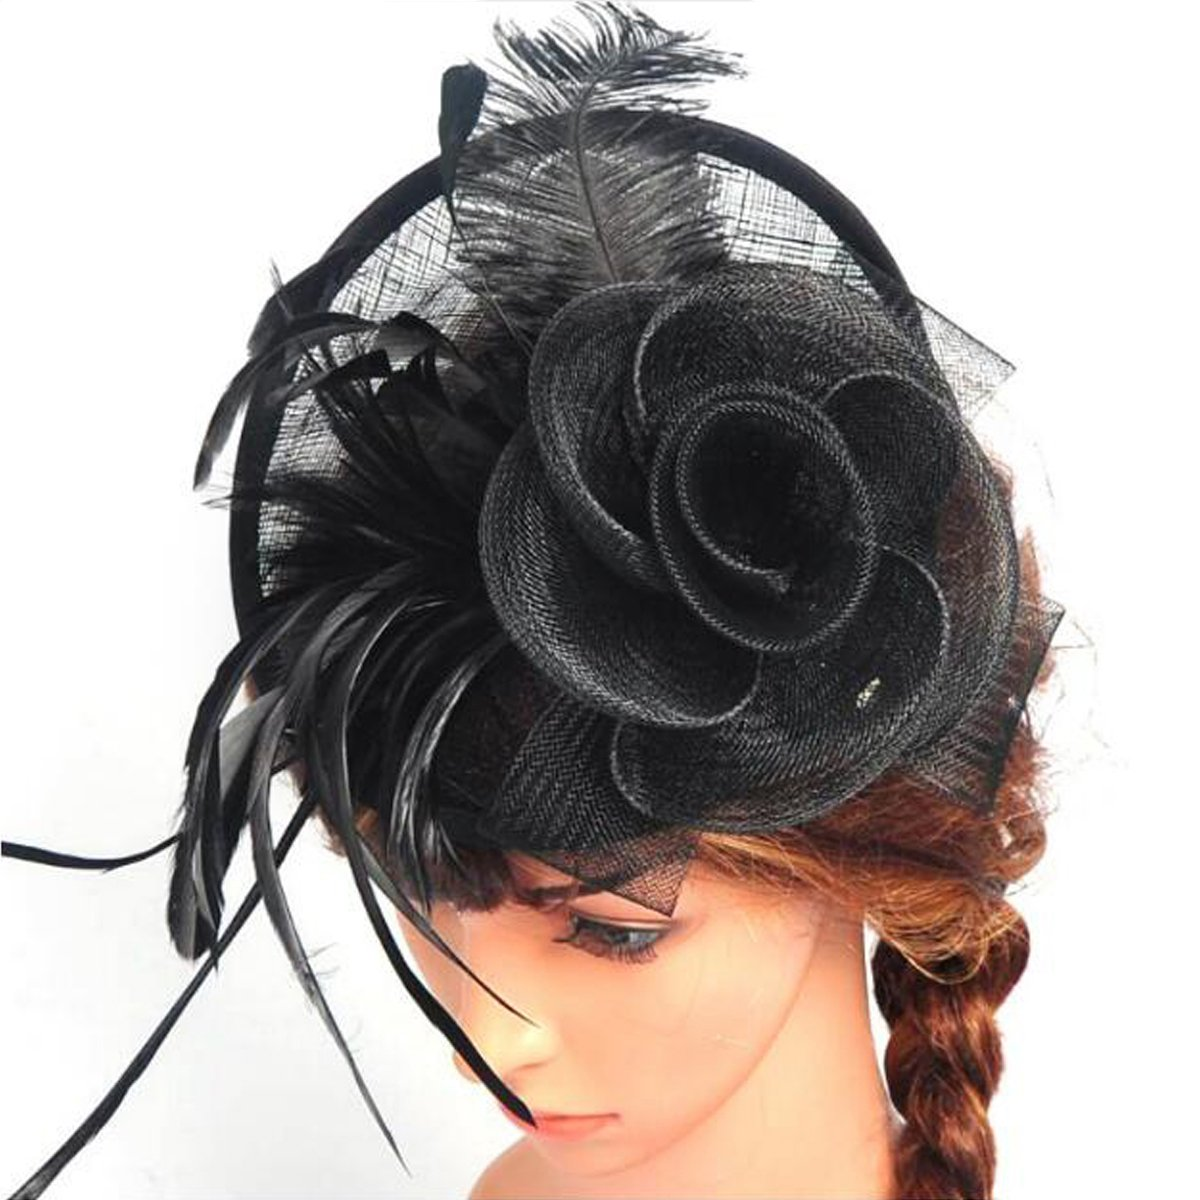 Lanzom Fascinator Hat Flower Feather Mesh Hat Party Bridal Wedding Derby Hat with Clip for Women Lady (Black, One Size)